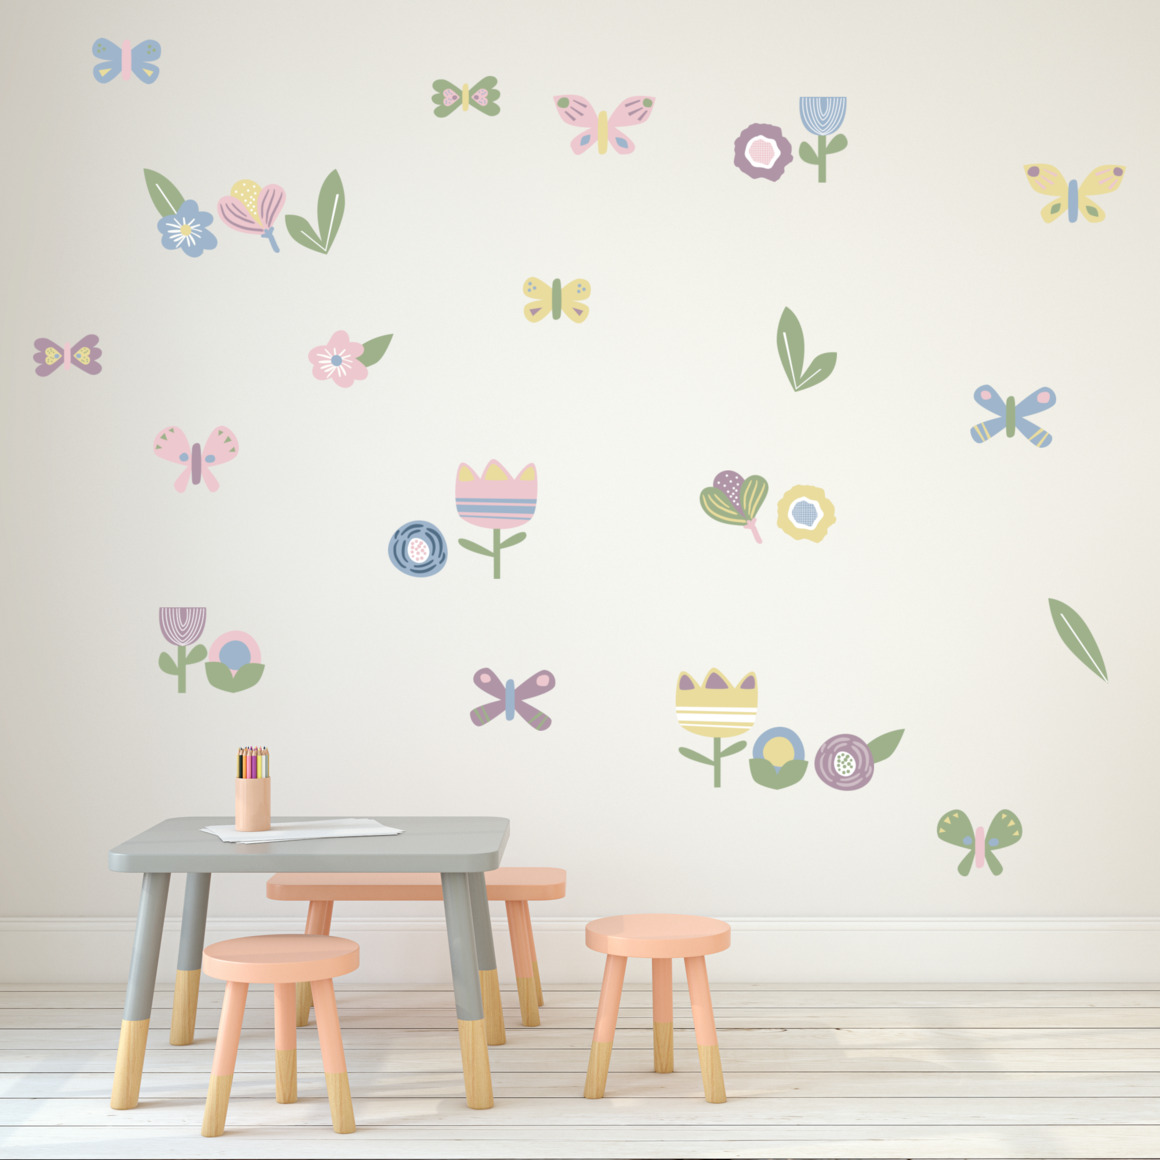 Fabric wall decals - Spring   Trada Marketplace